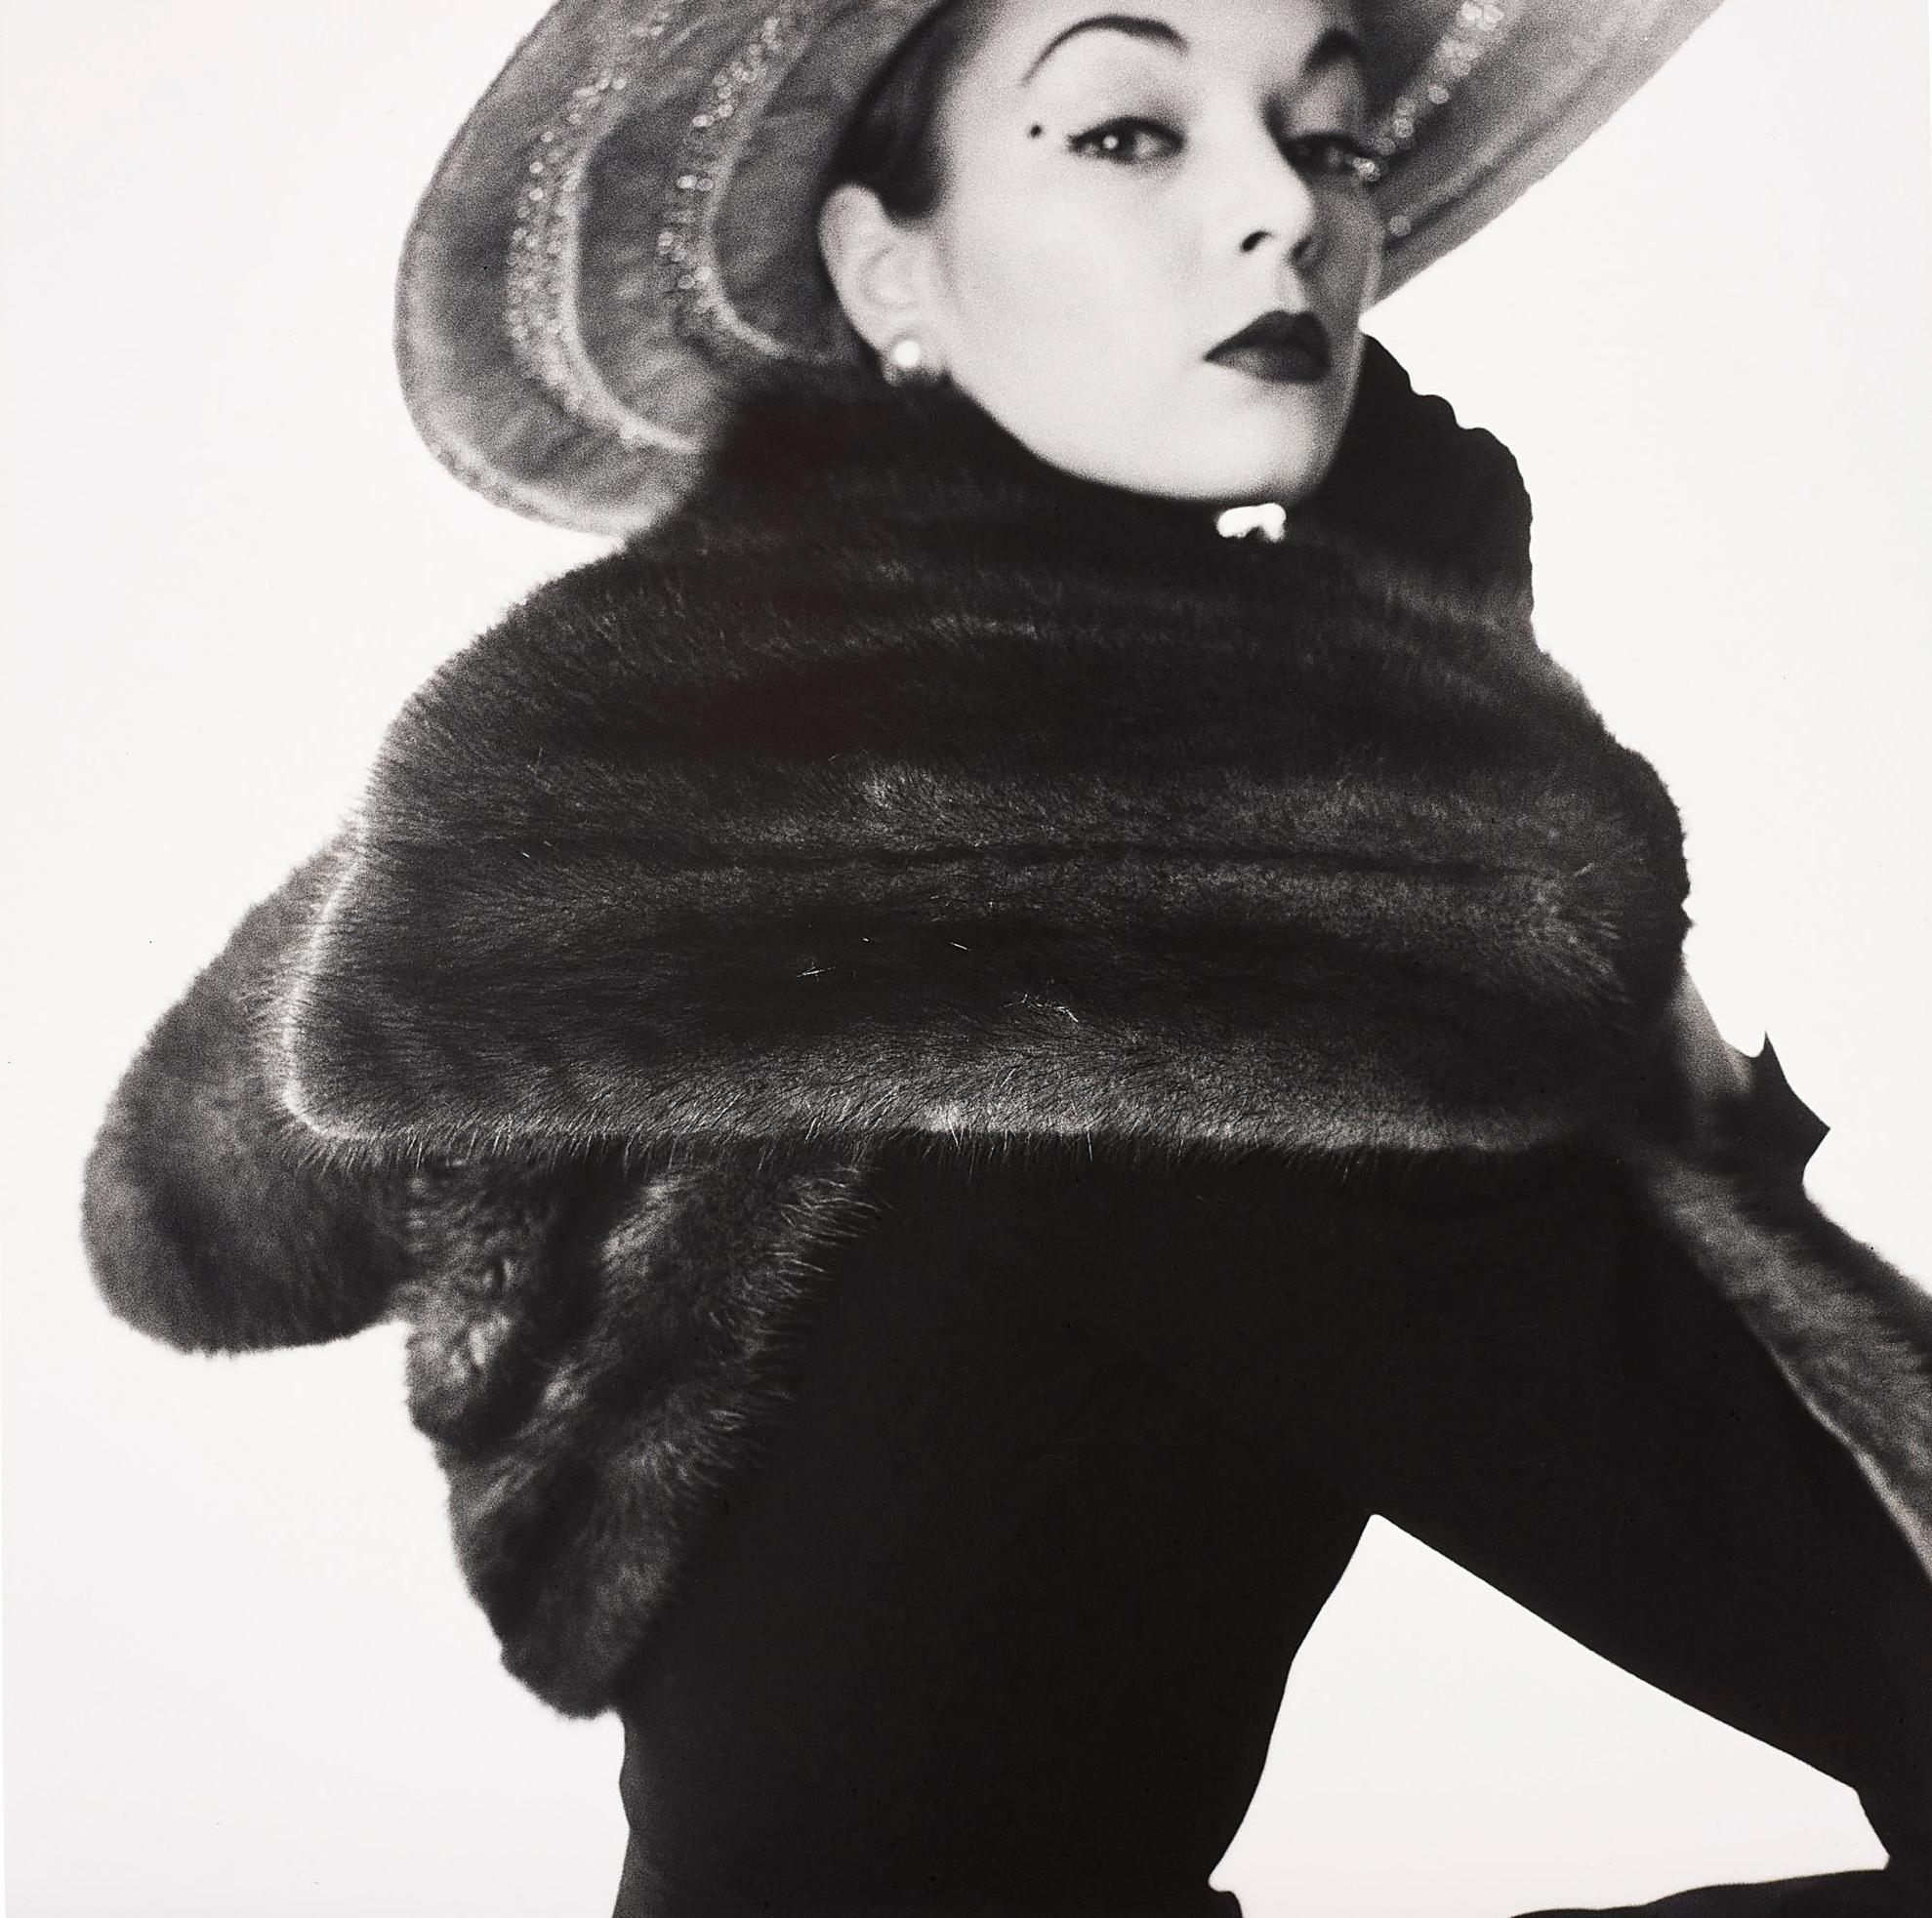 Irving Penn-Dior Fur Scarf (Jean Patchett), New York-1951